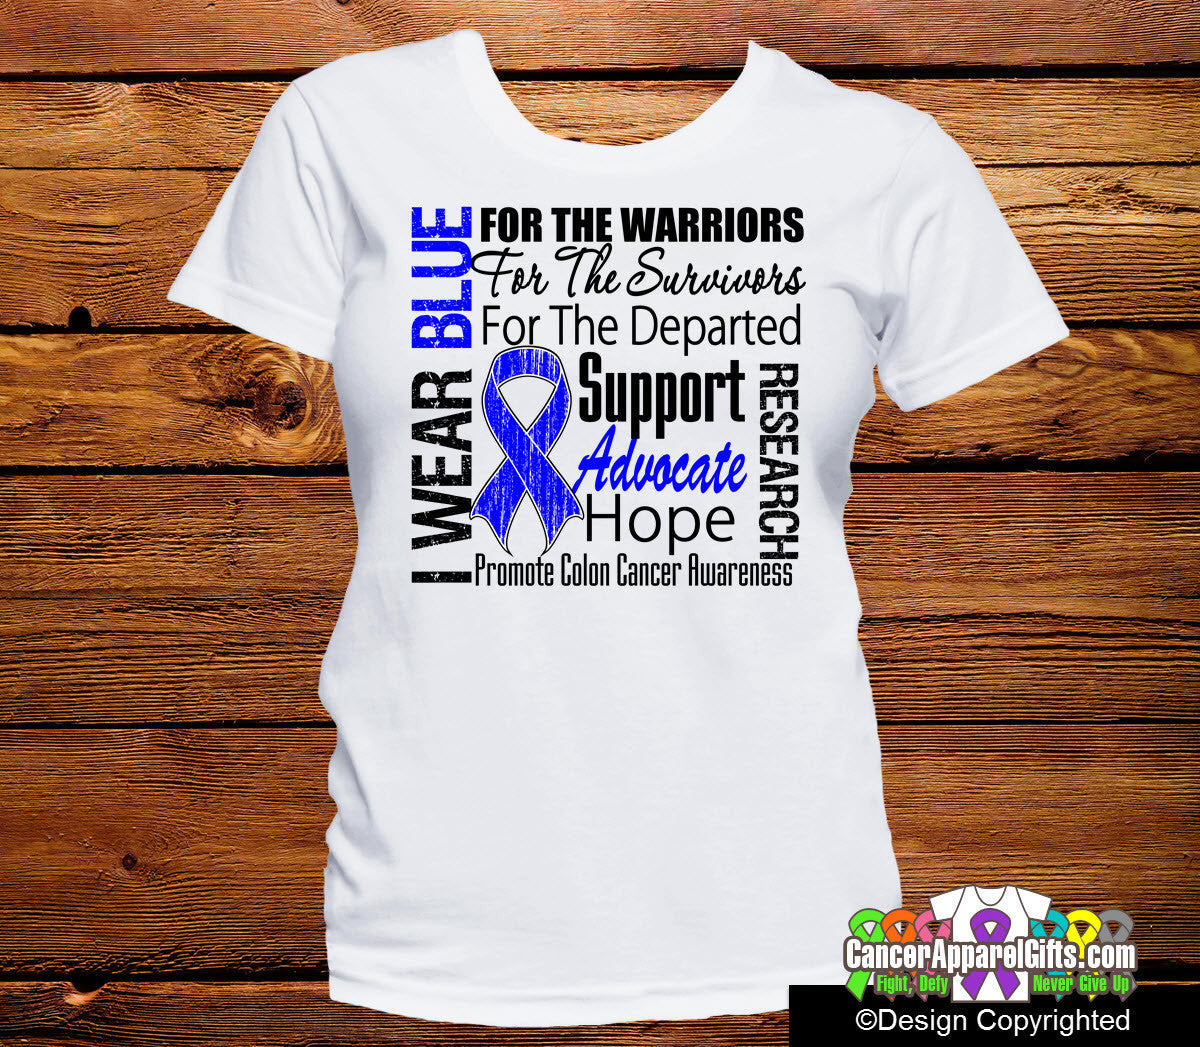 Colon Cancer Tribute Shirts